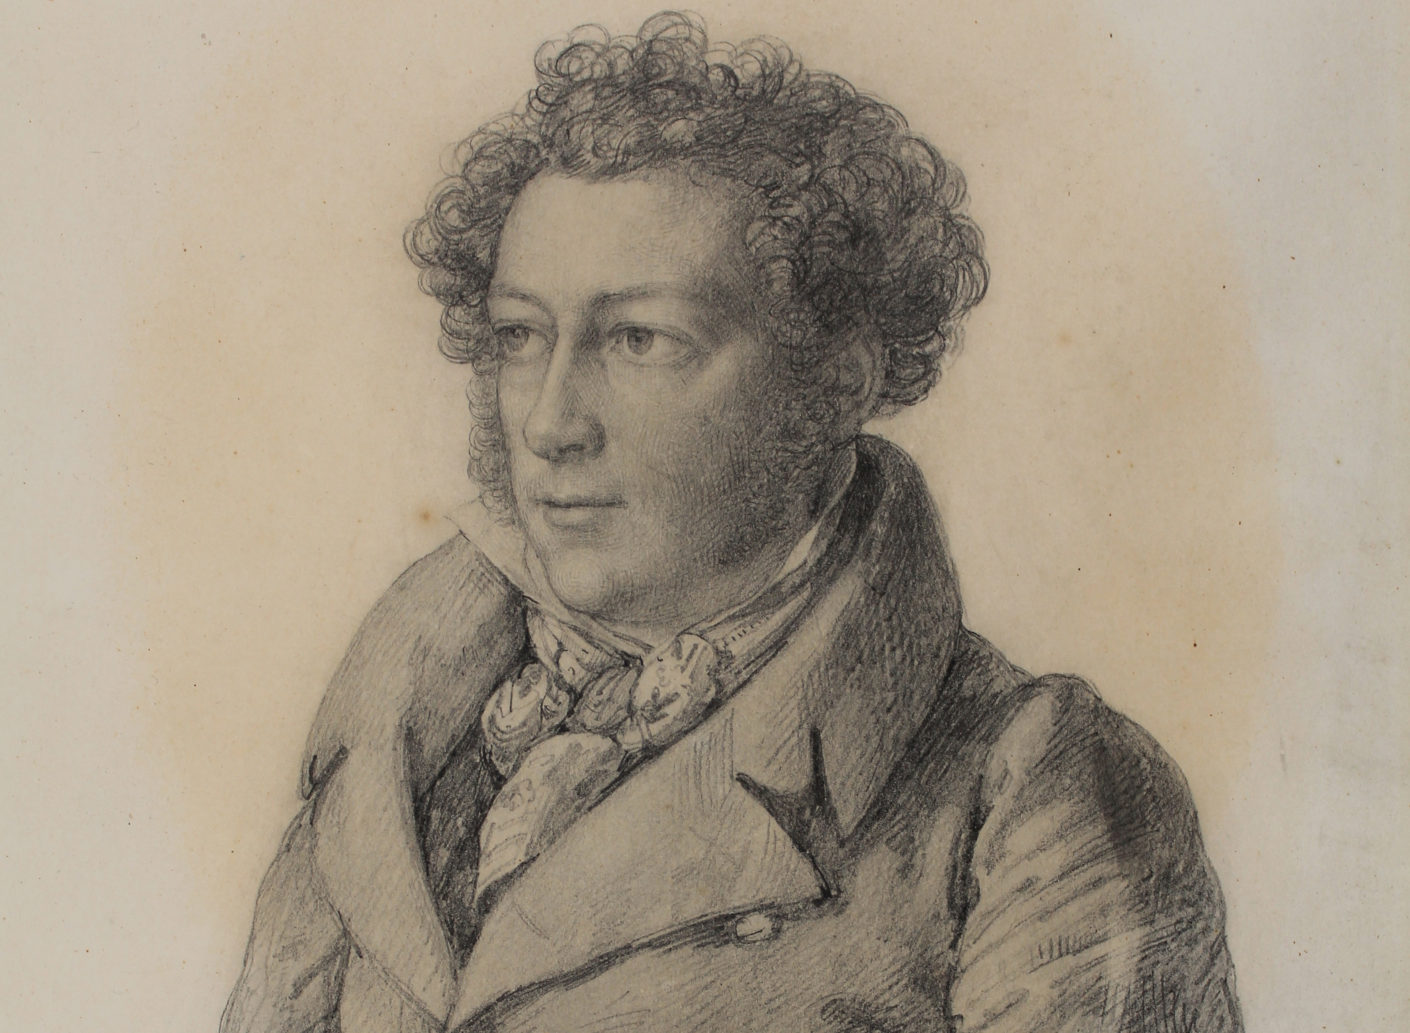 Portrait Jakob Ignaz Hittorff by  Carl Joseph Begas from 1821